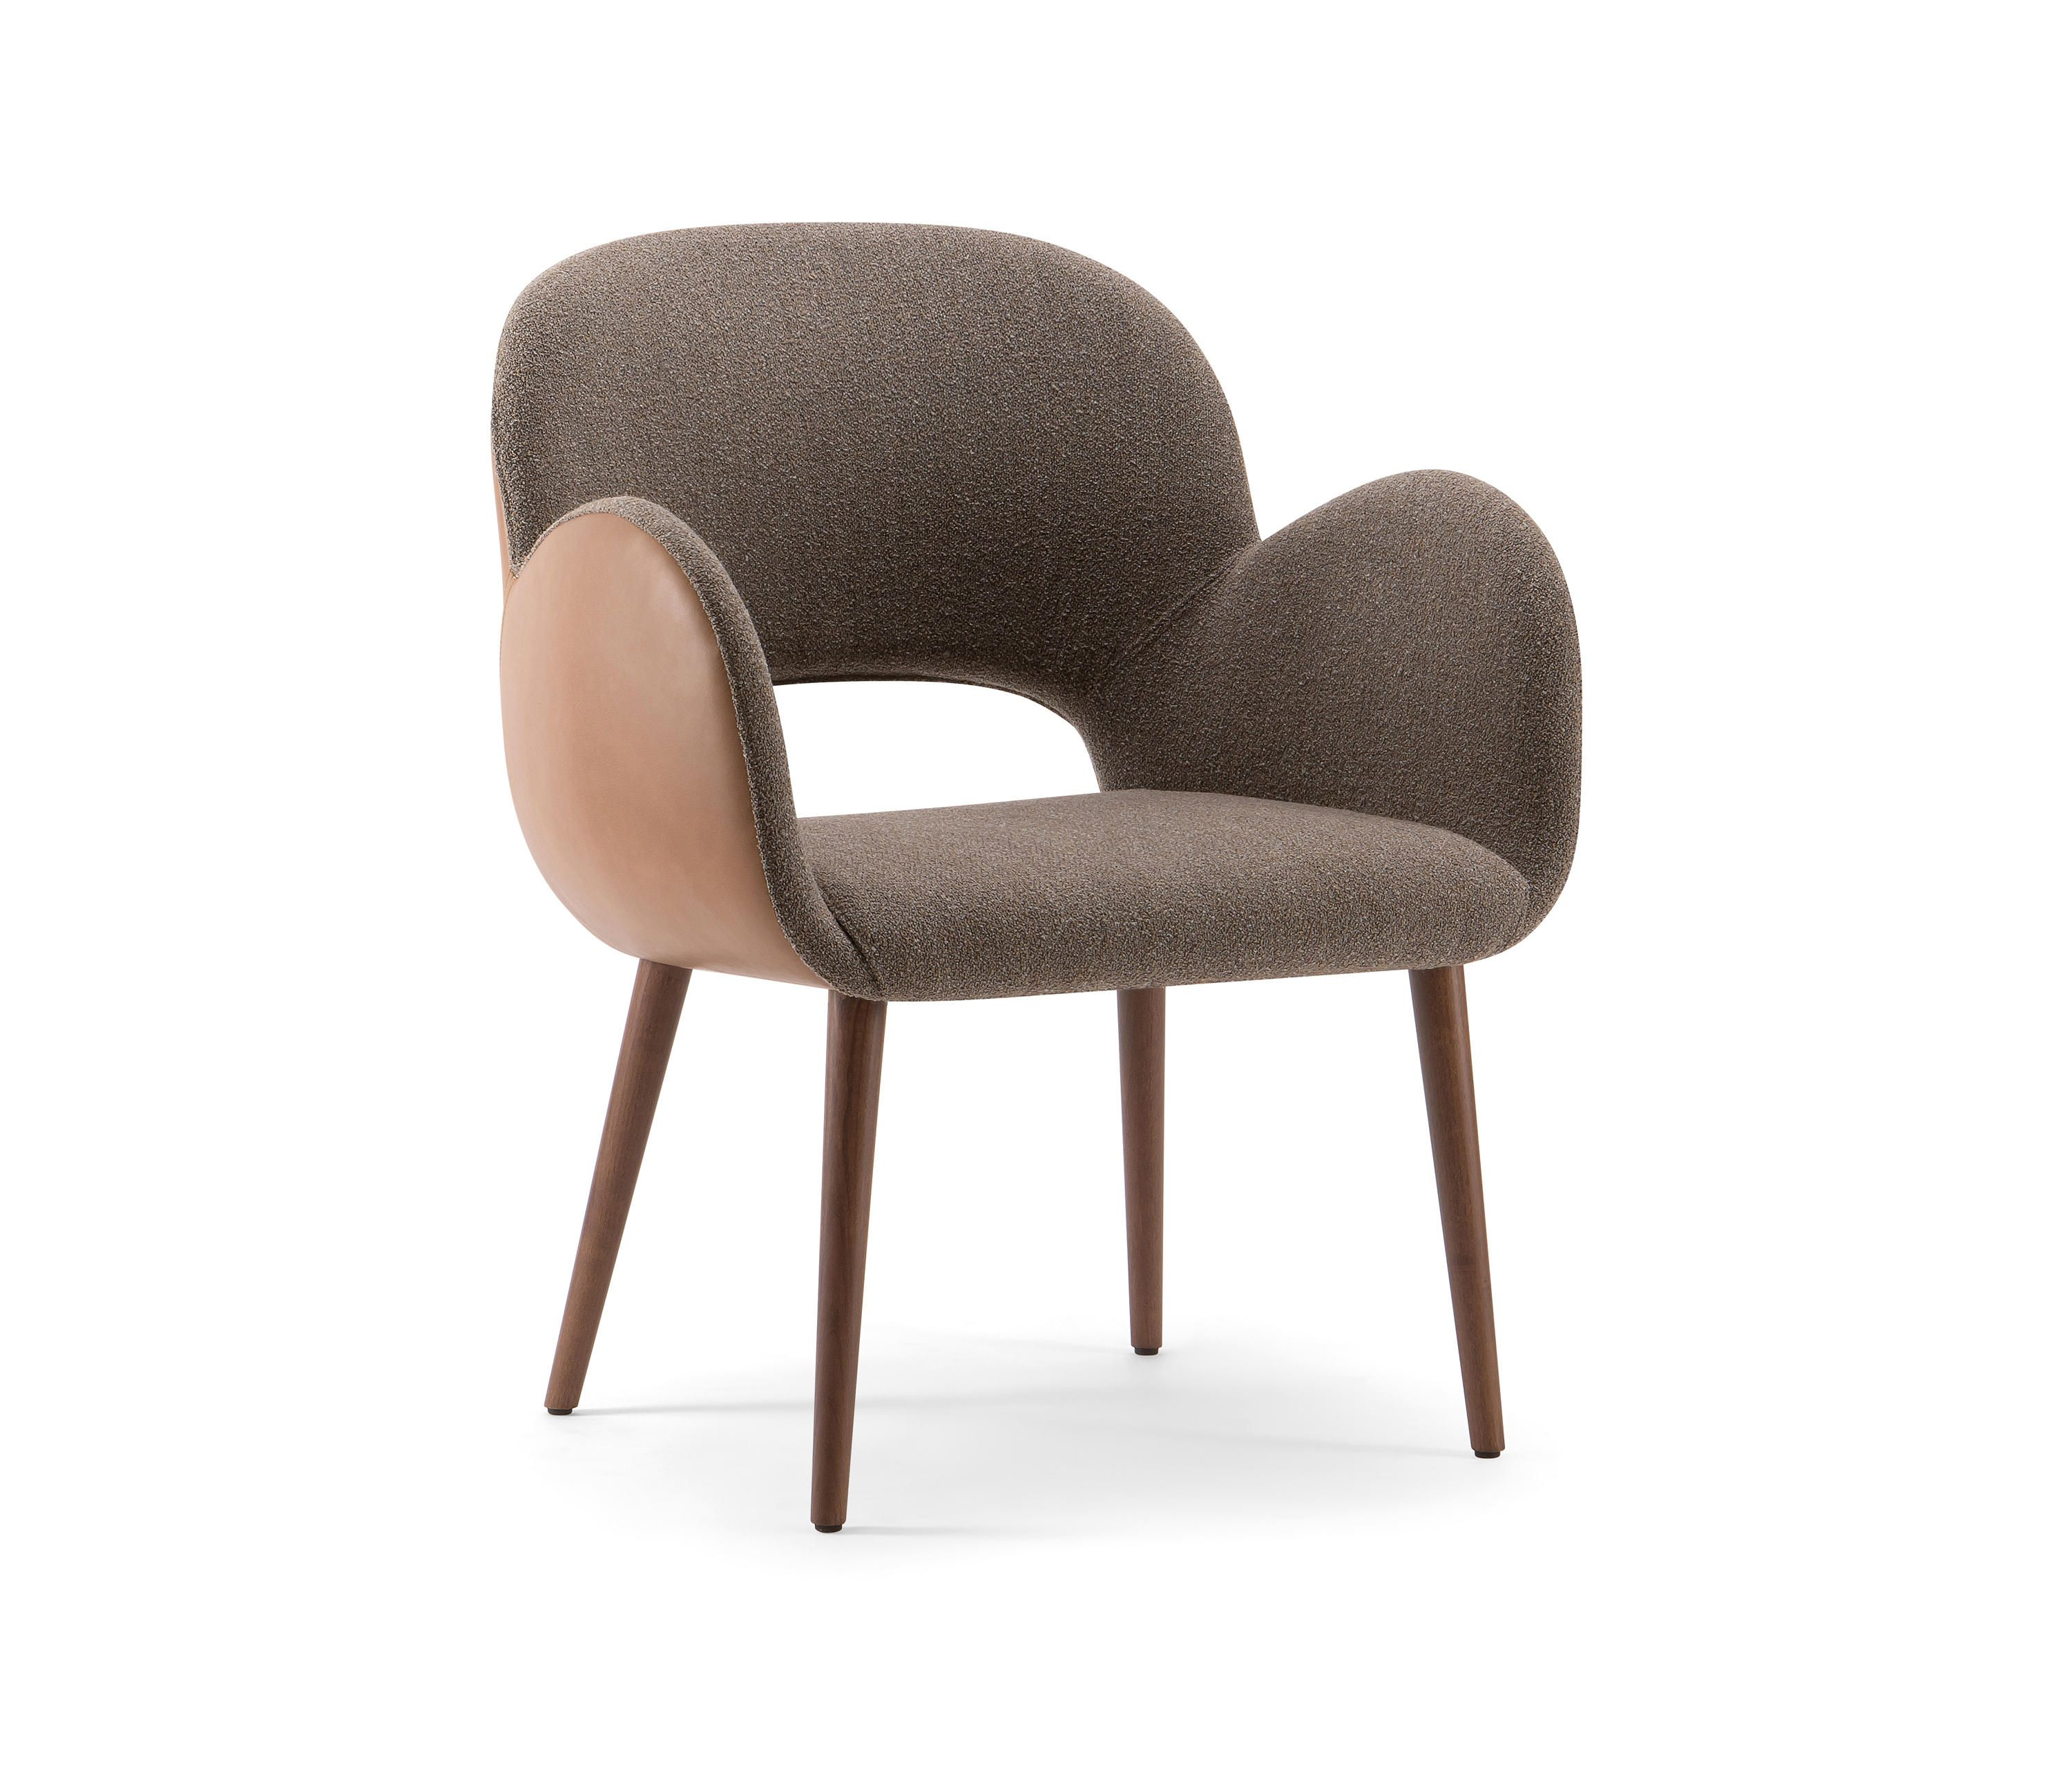 Swell Bliss 05 Base 100 Designer Lounge Chairs From Torre 1961 Pdpeps Interior Chair Design Pdpepsorg